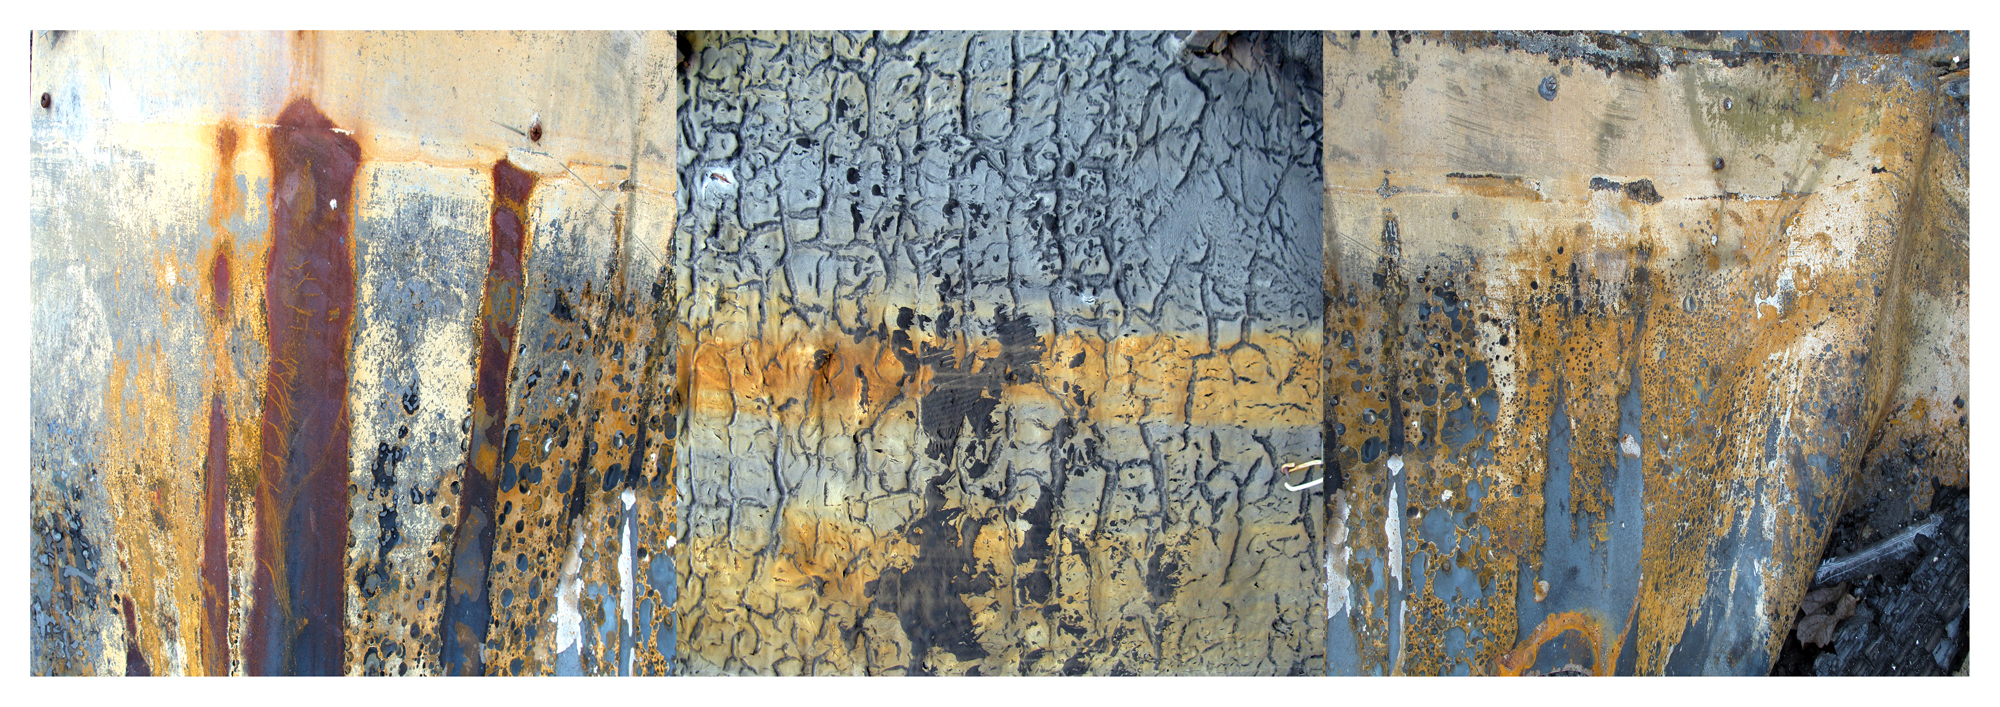 """""""Fire And Rust"""" 2014  18"""" x 54"""" digital print  variablesizes available"""